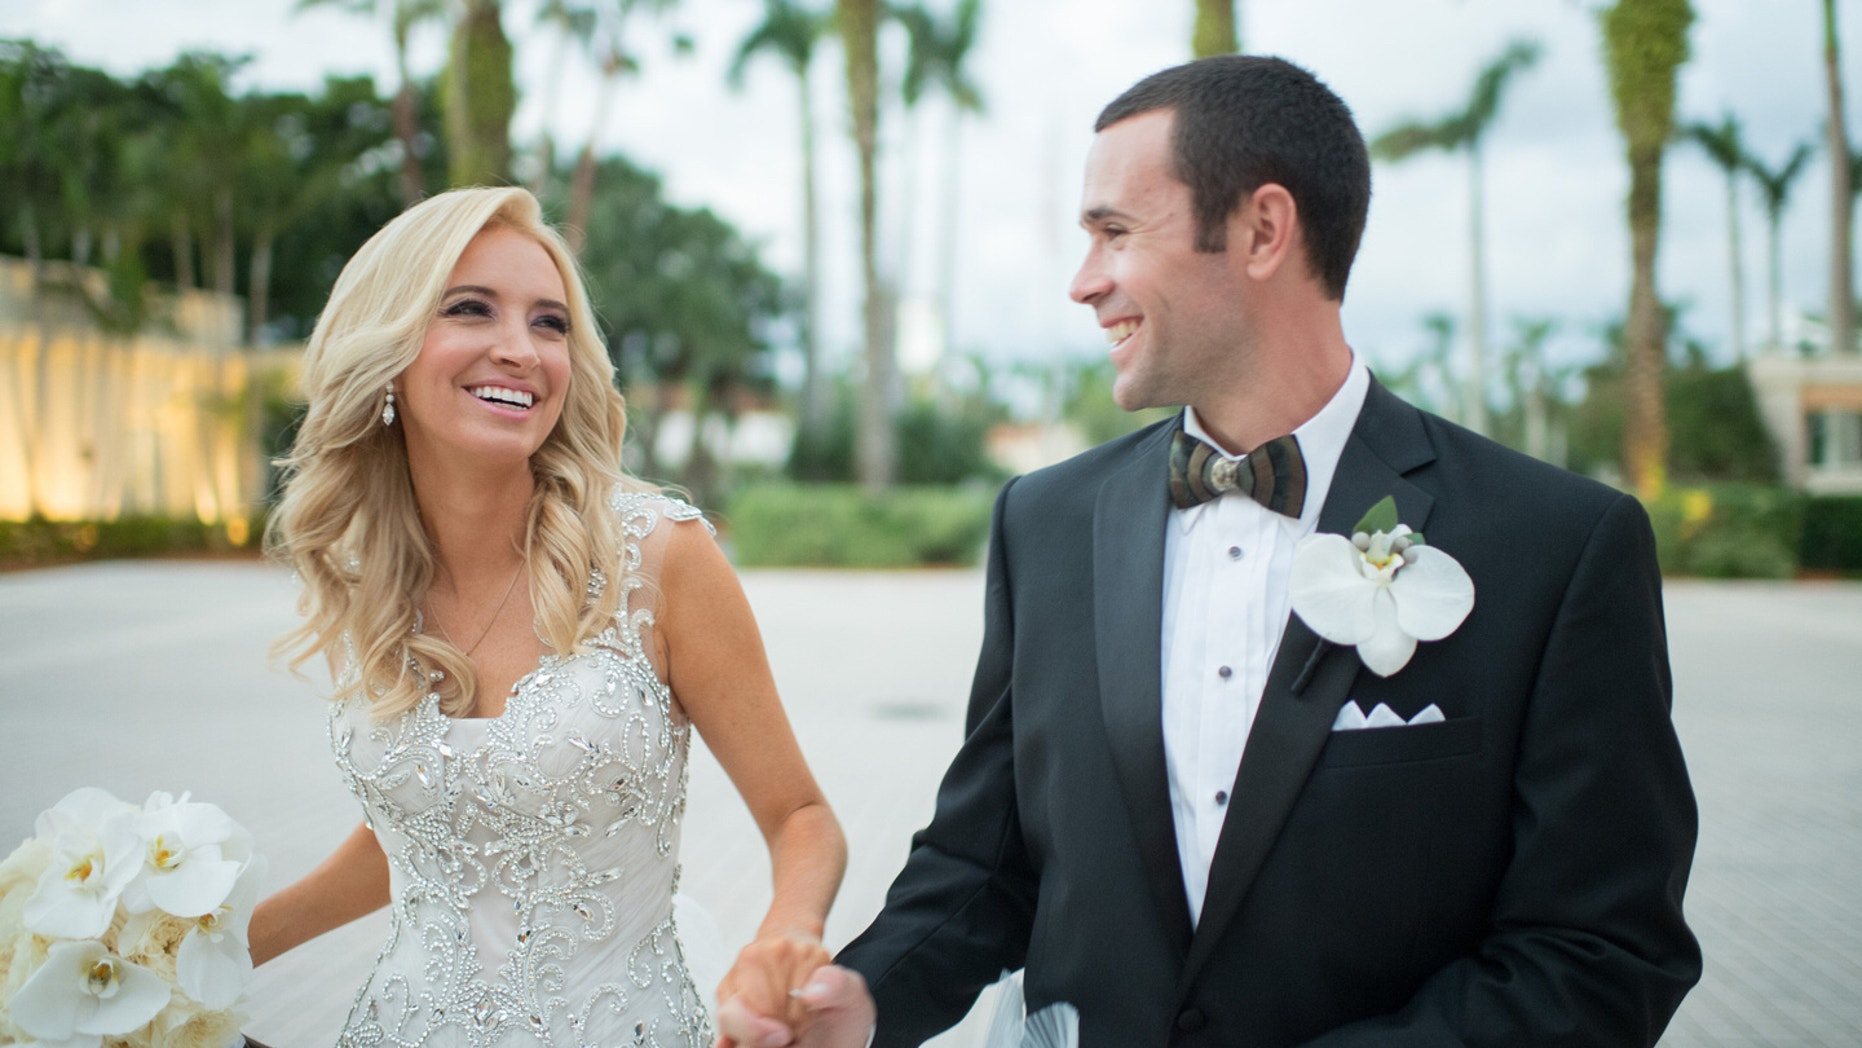 Kayleigh and her husband Sean on their wedding day.